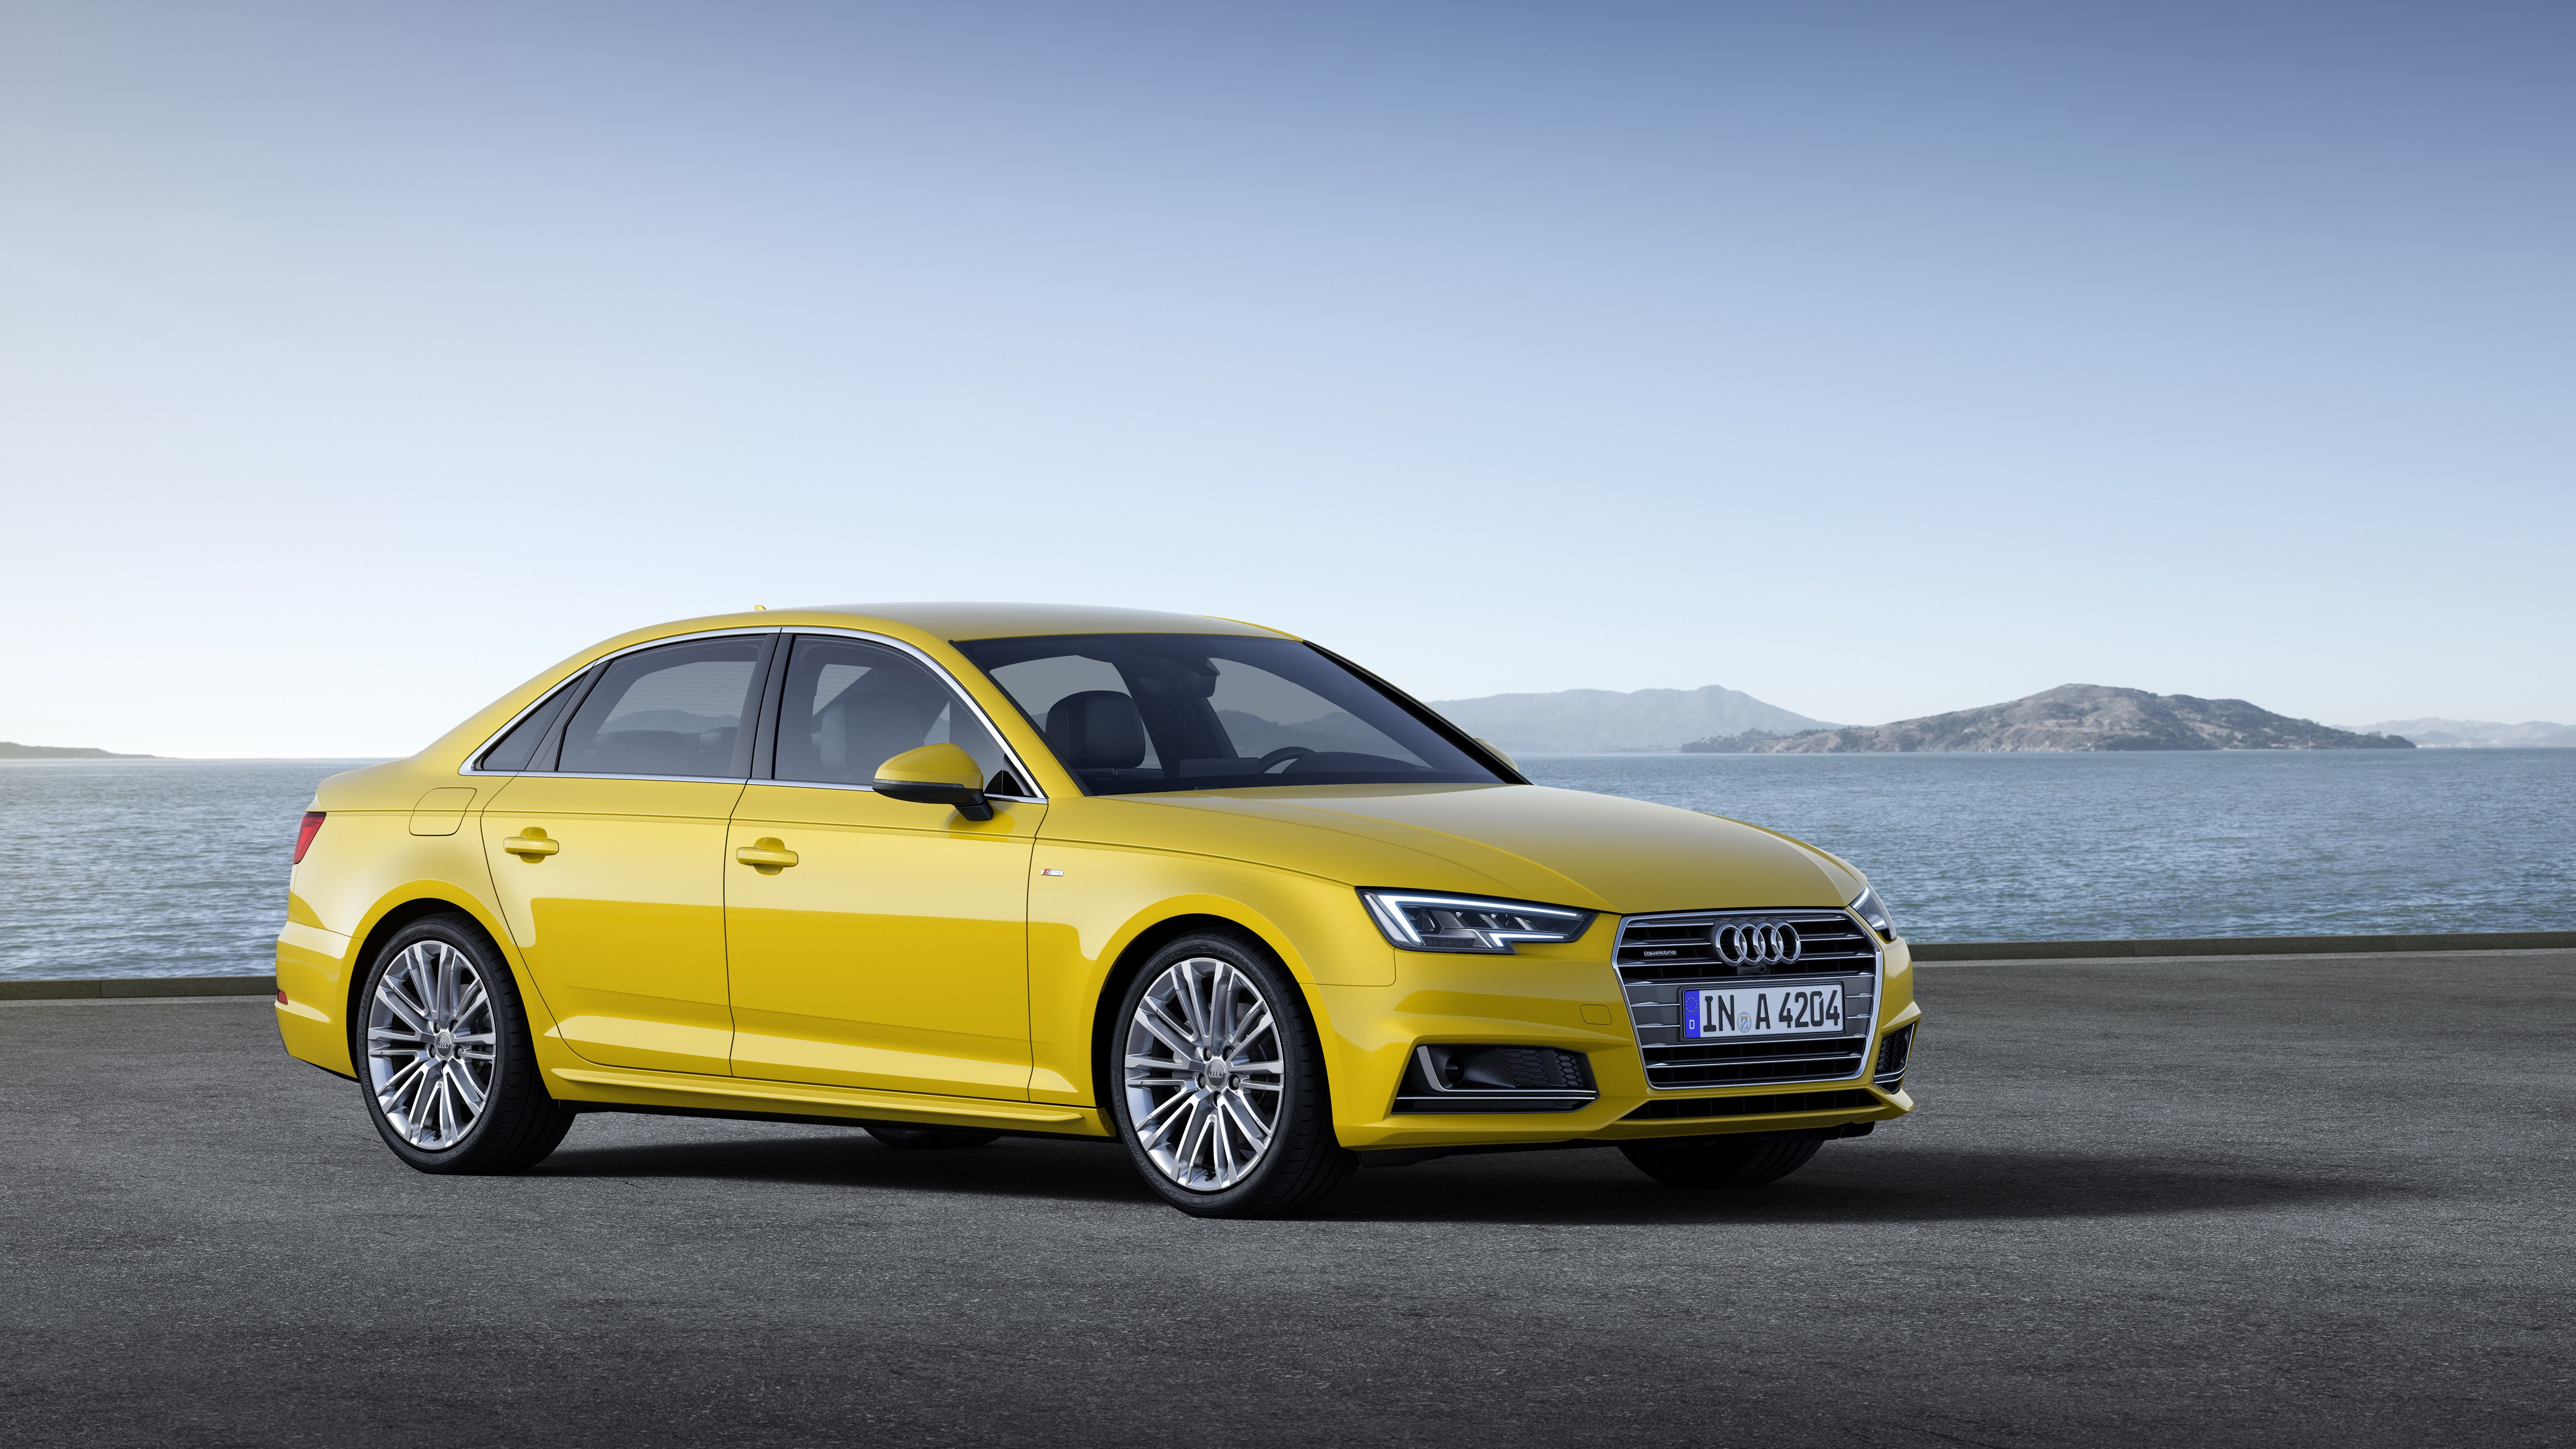 2016 Audi A4 Specs and Release Date exterior design features